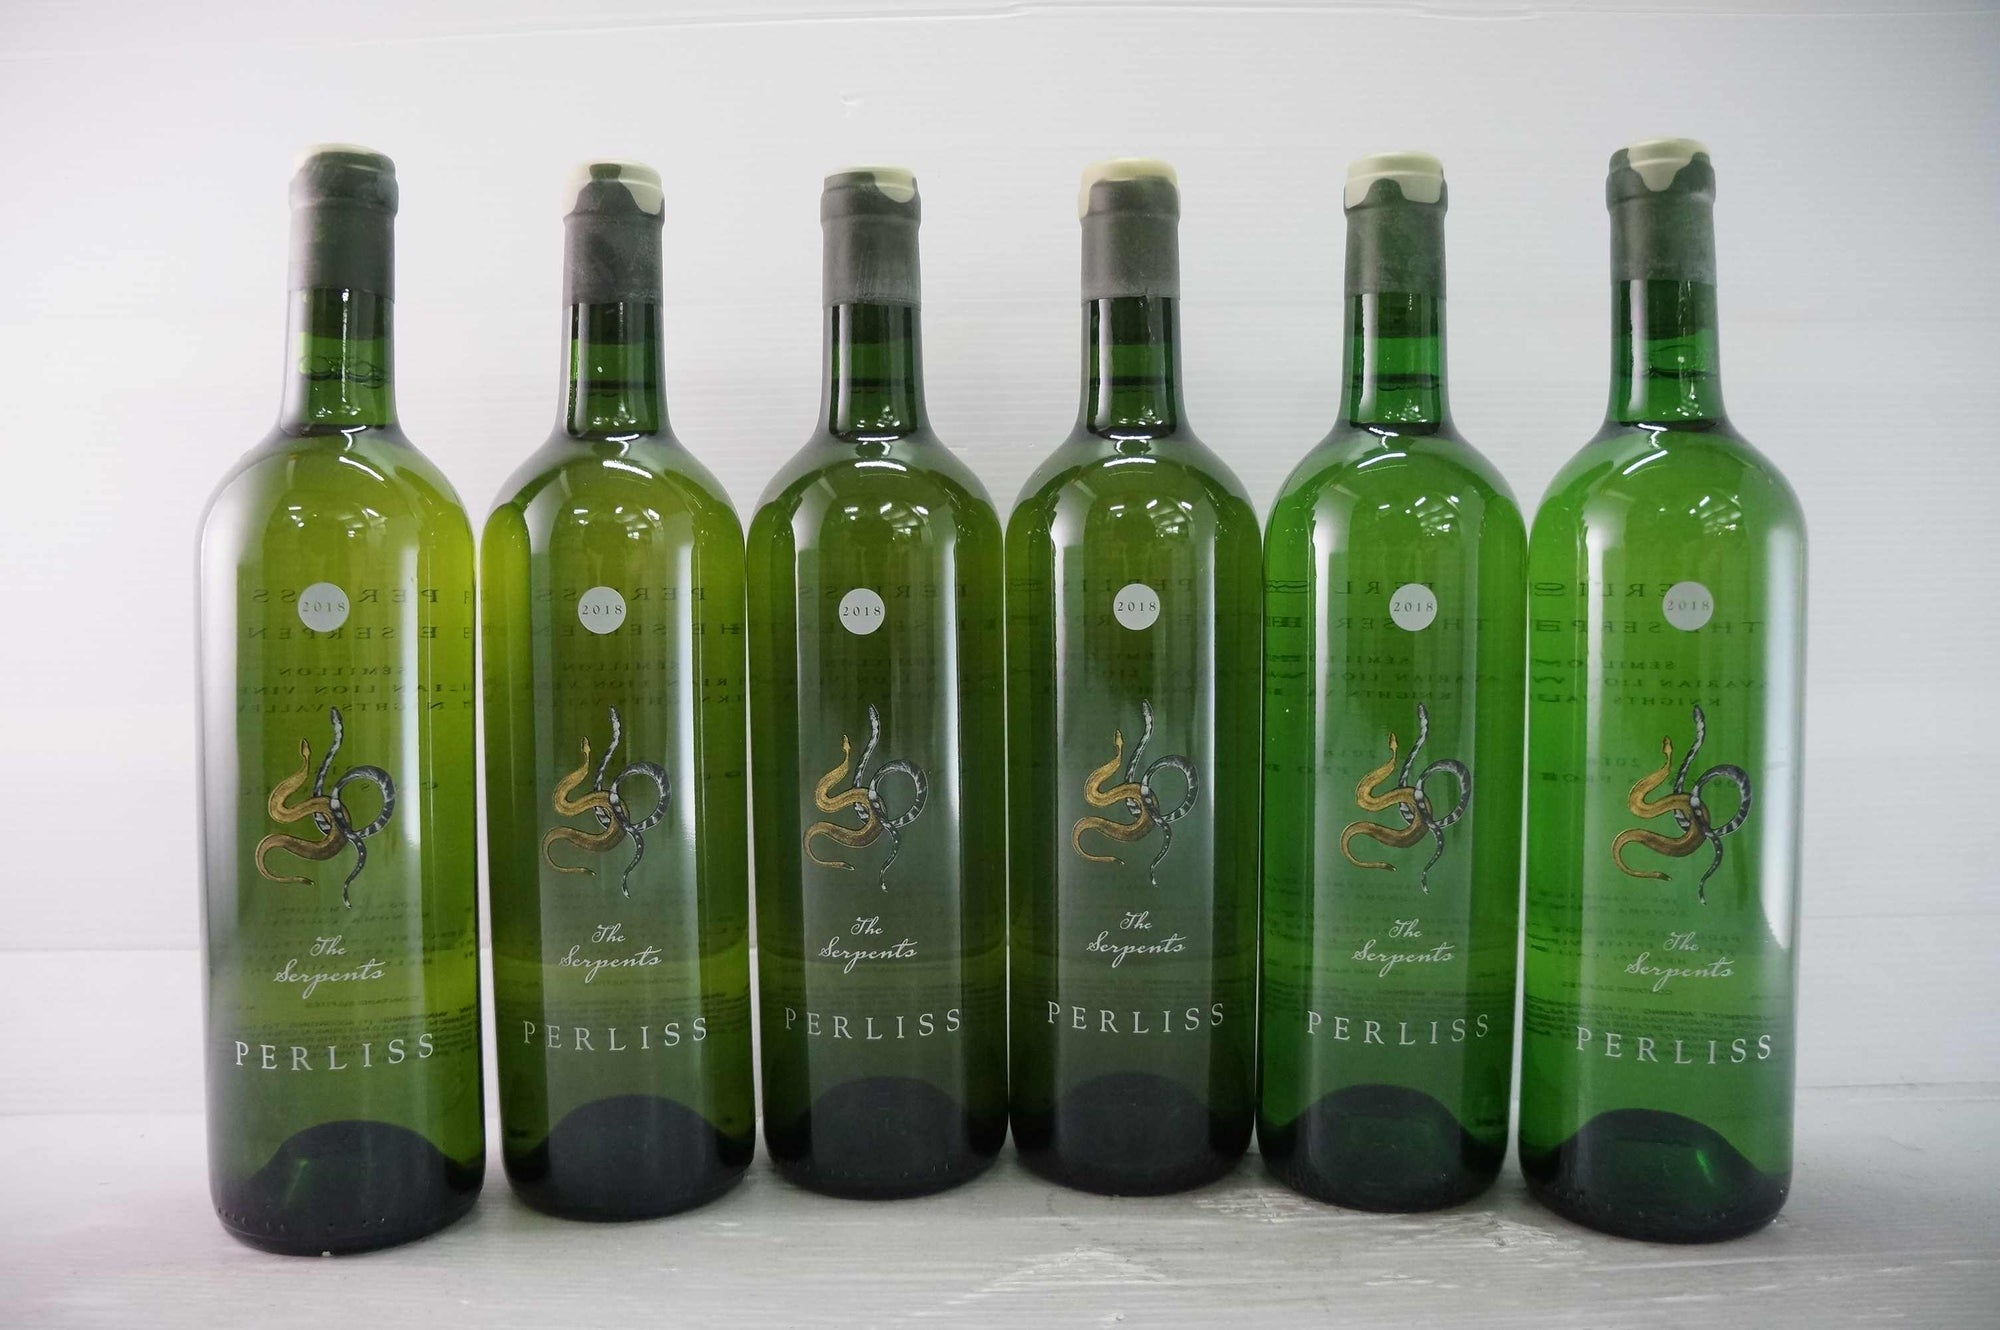 Perliss The Serpents Semillon 2018